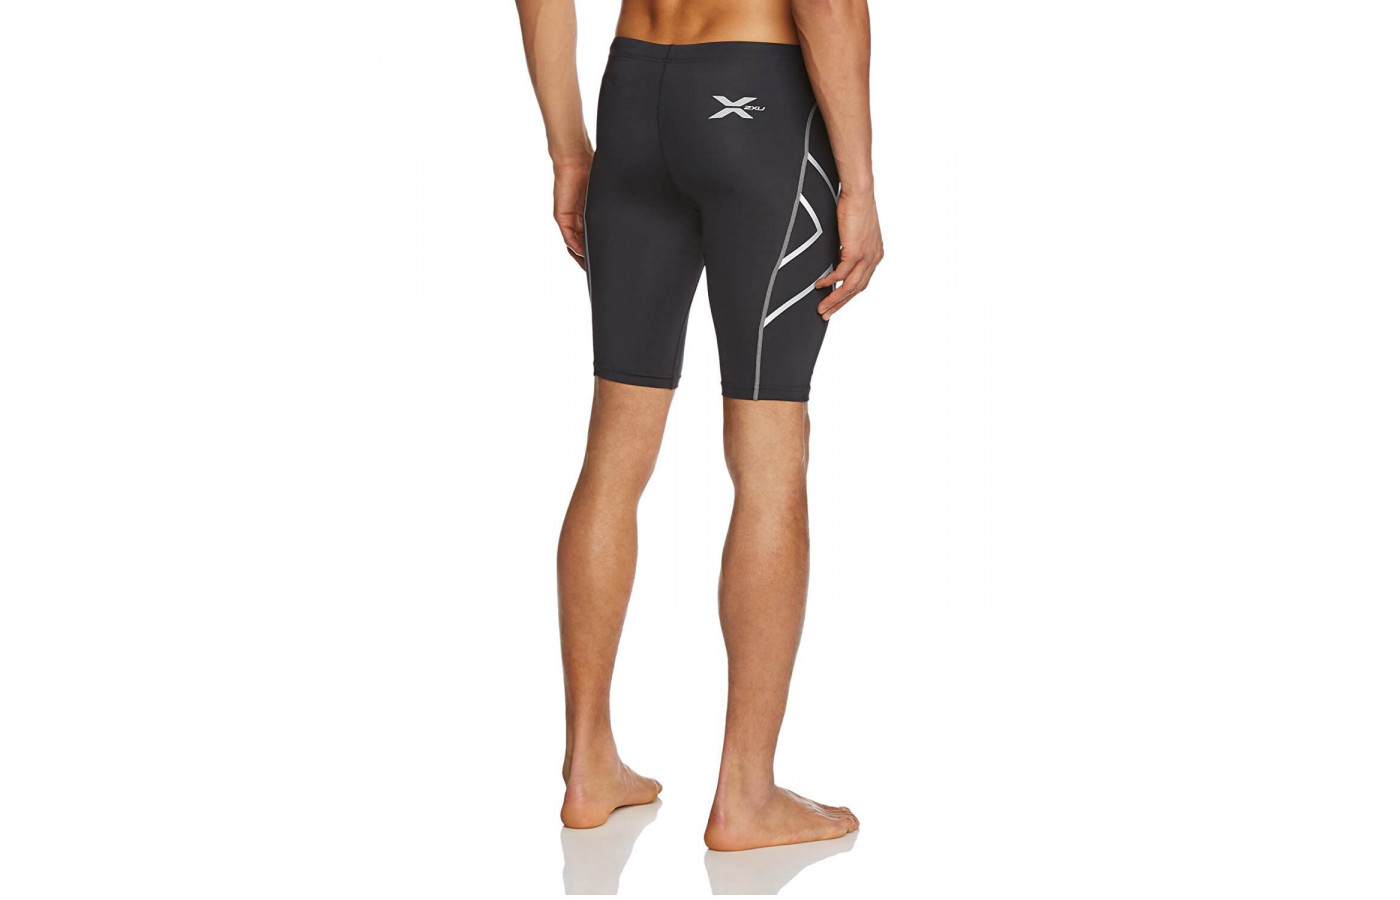 The 2XU Compression Shorts can help to prevent DOMS after a workout.